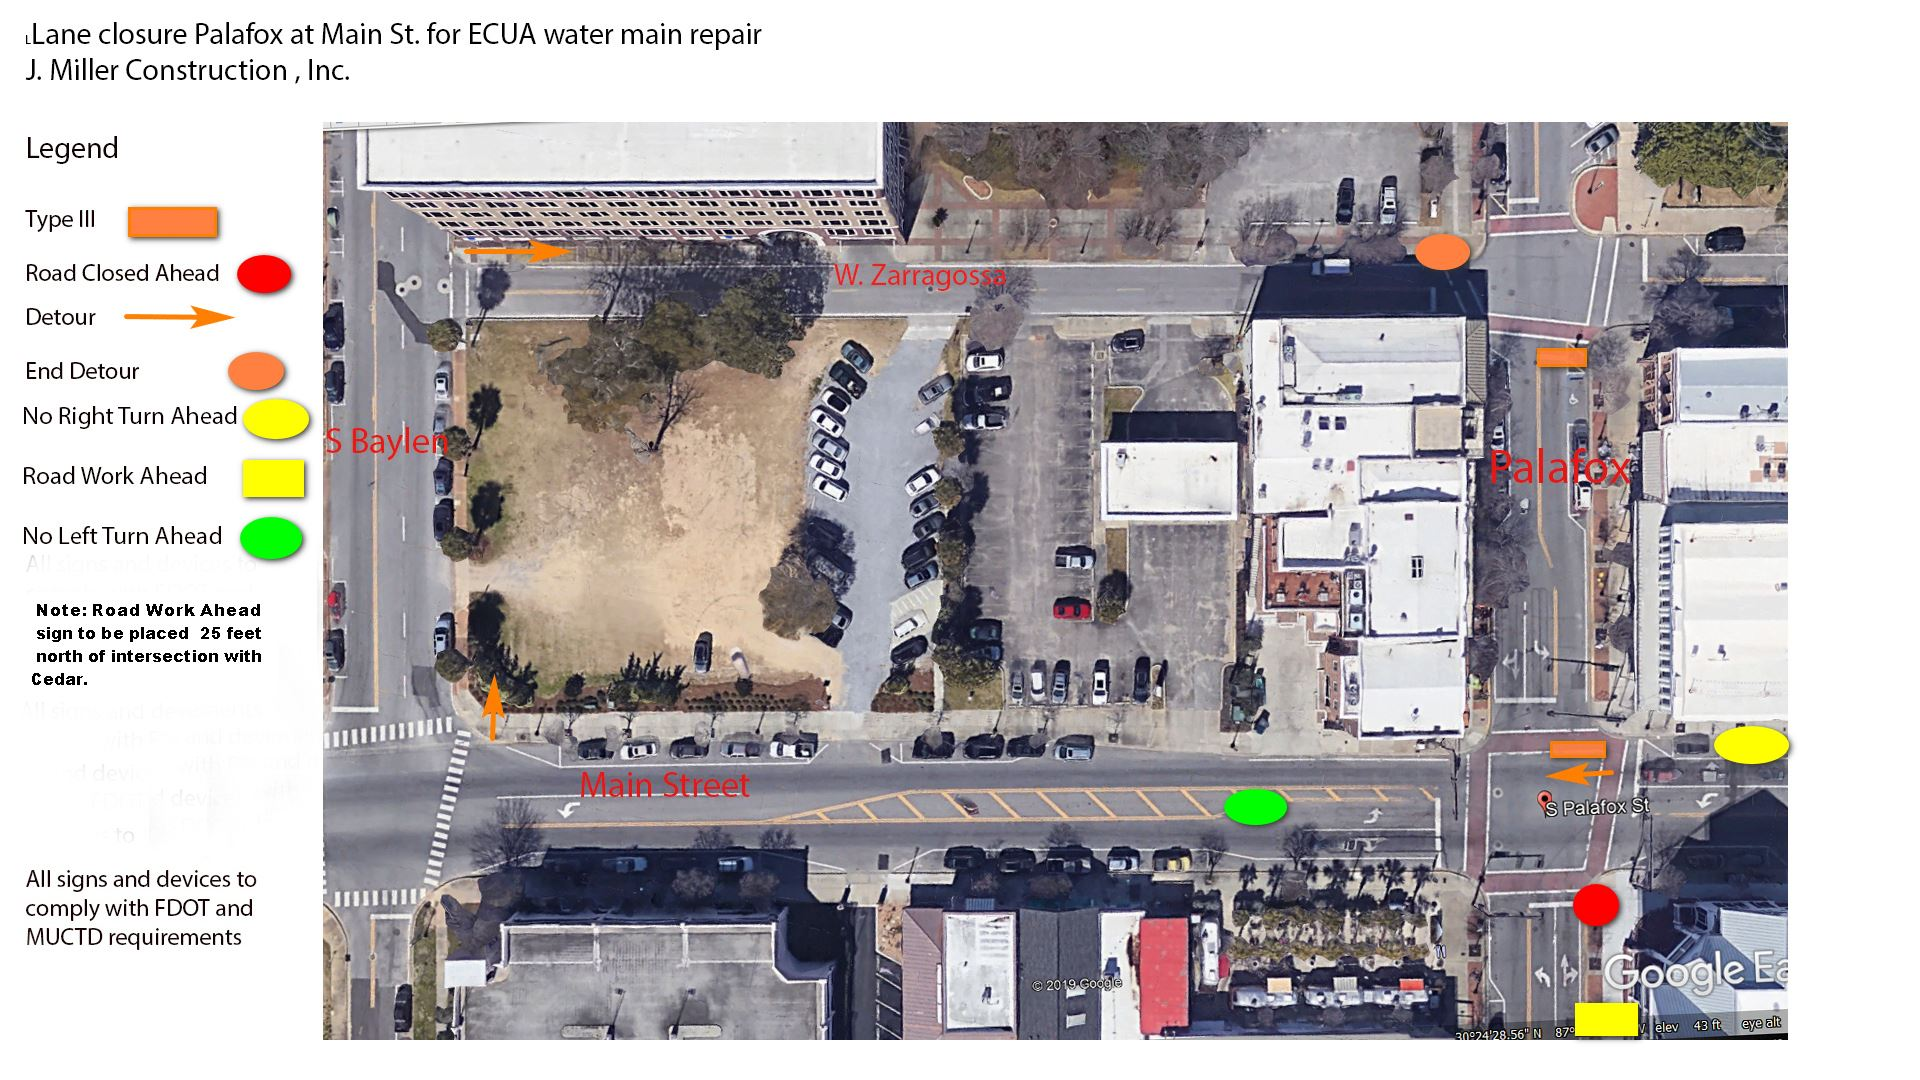 Palafox lane closure map